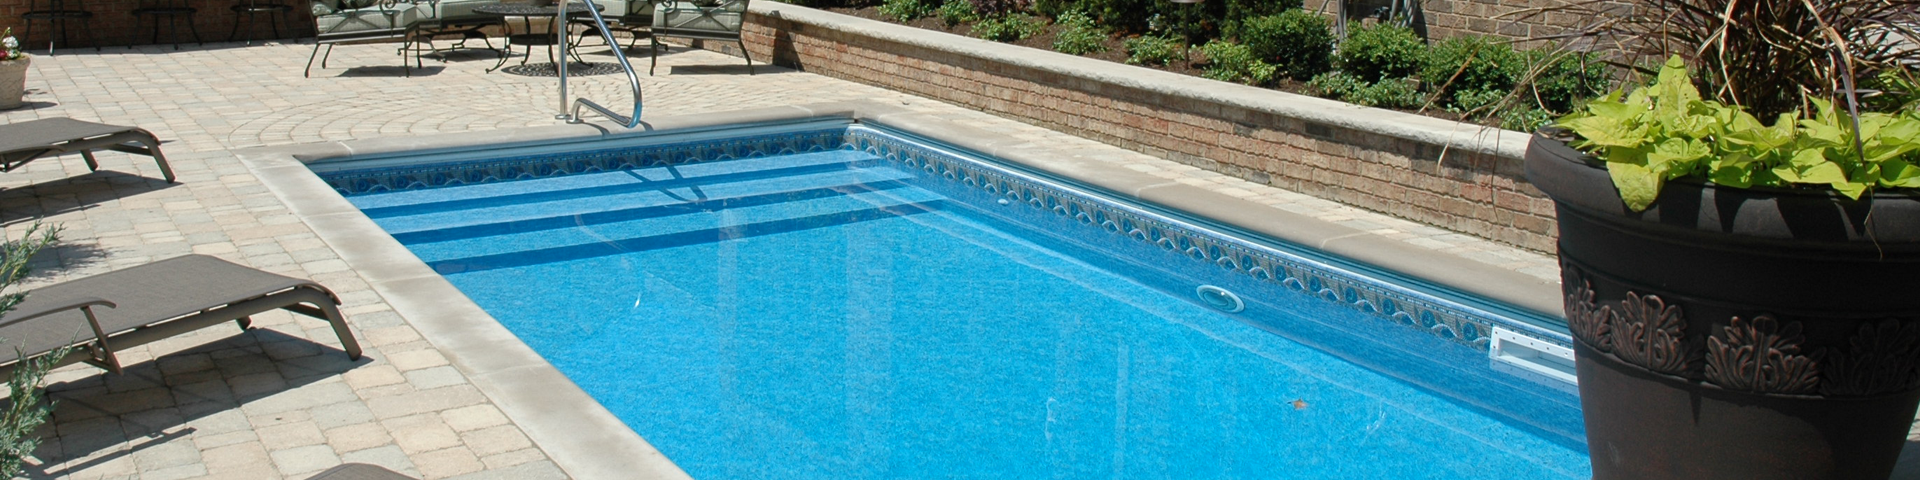 Pro Edge Inground Pools